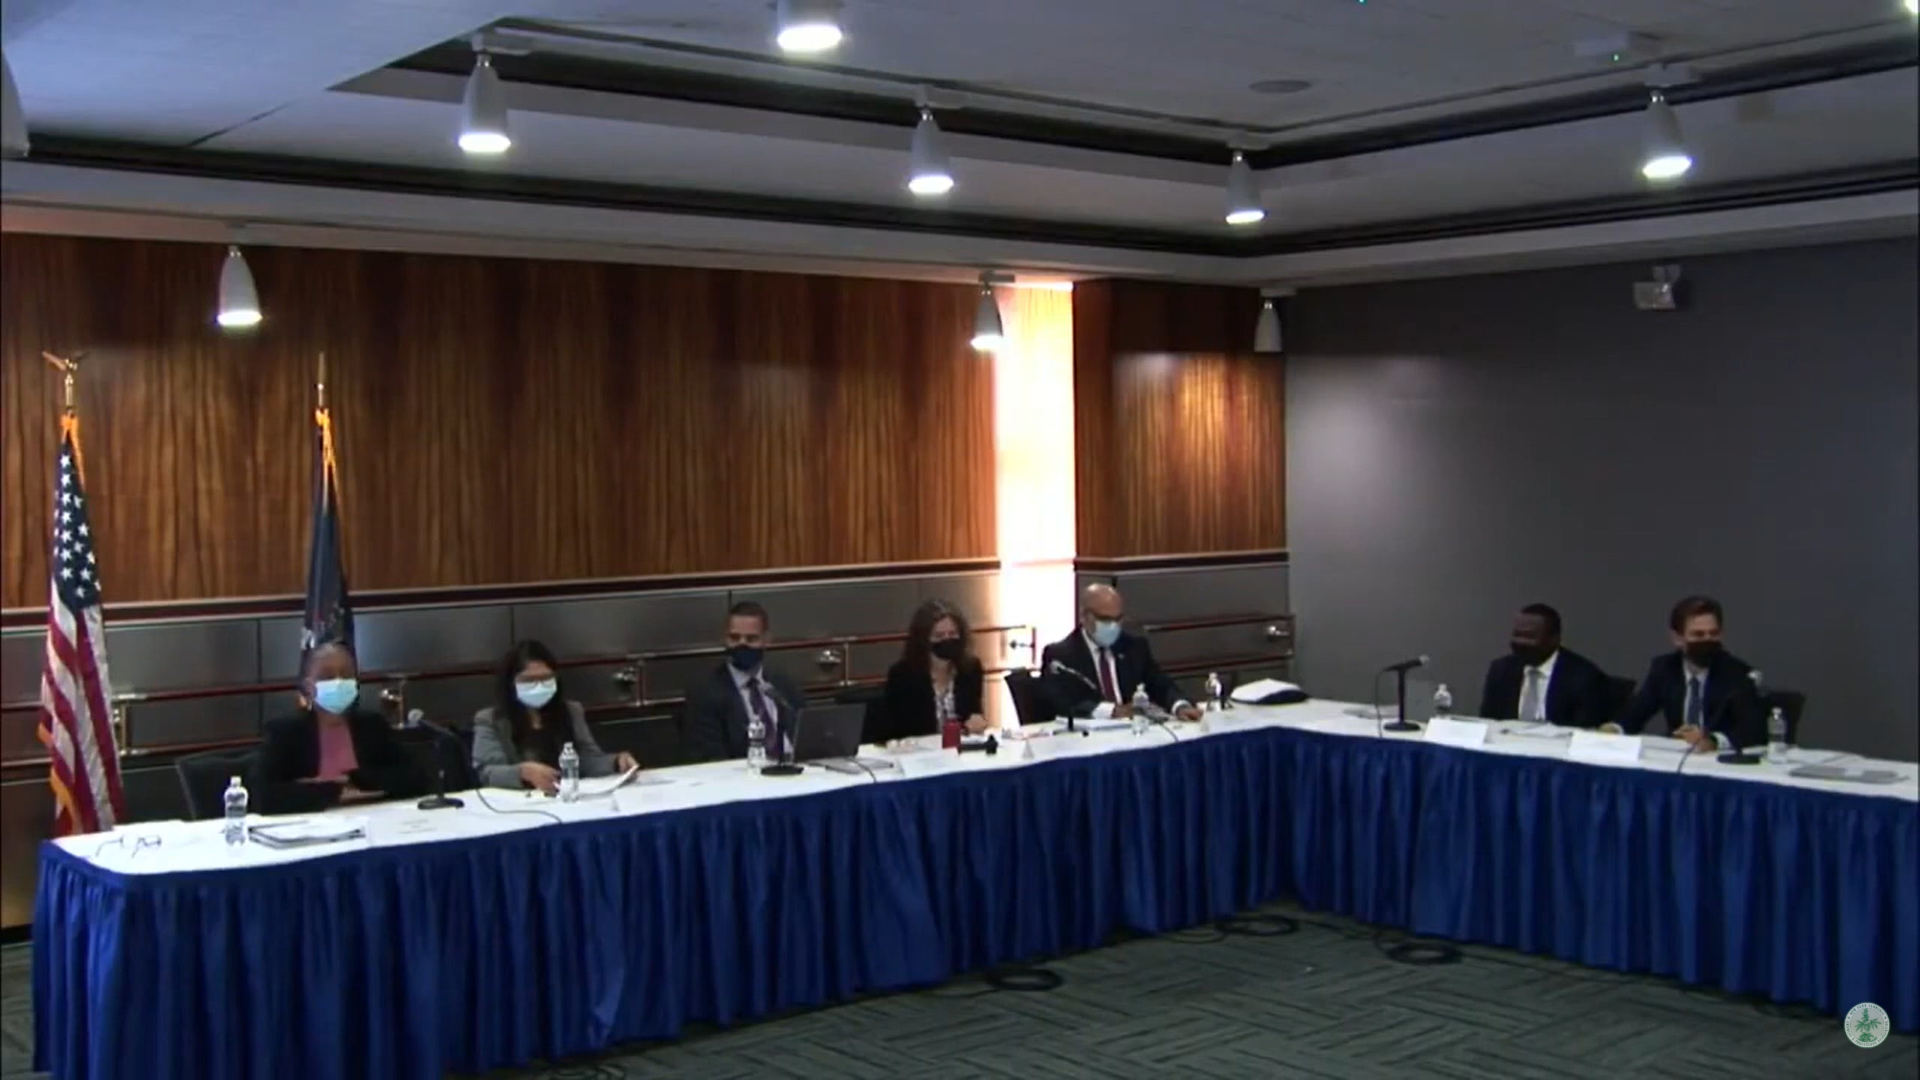 New York cannabis board holds first meeting, expands medical access